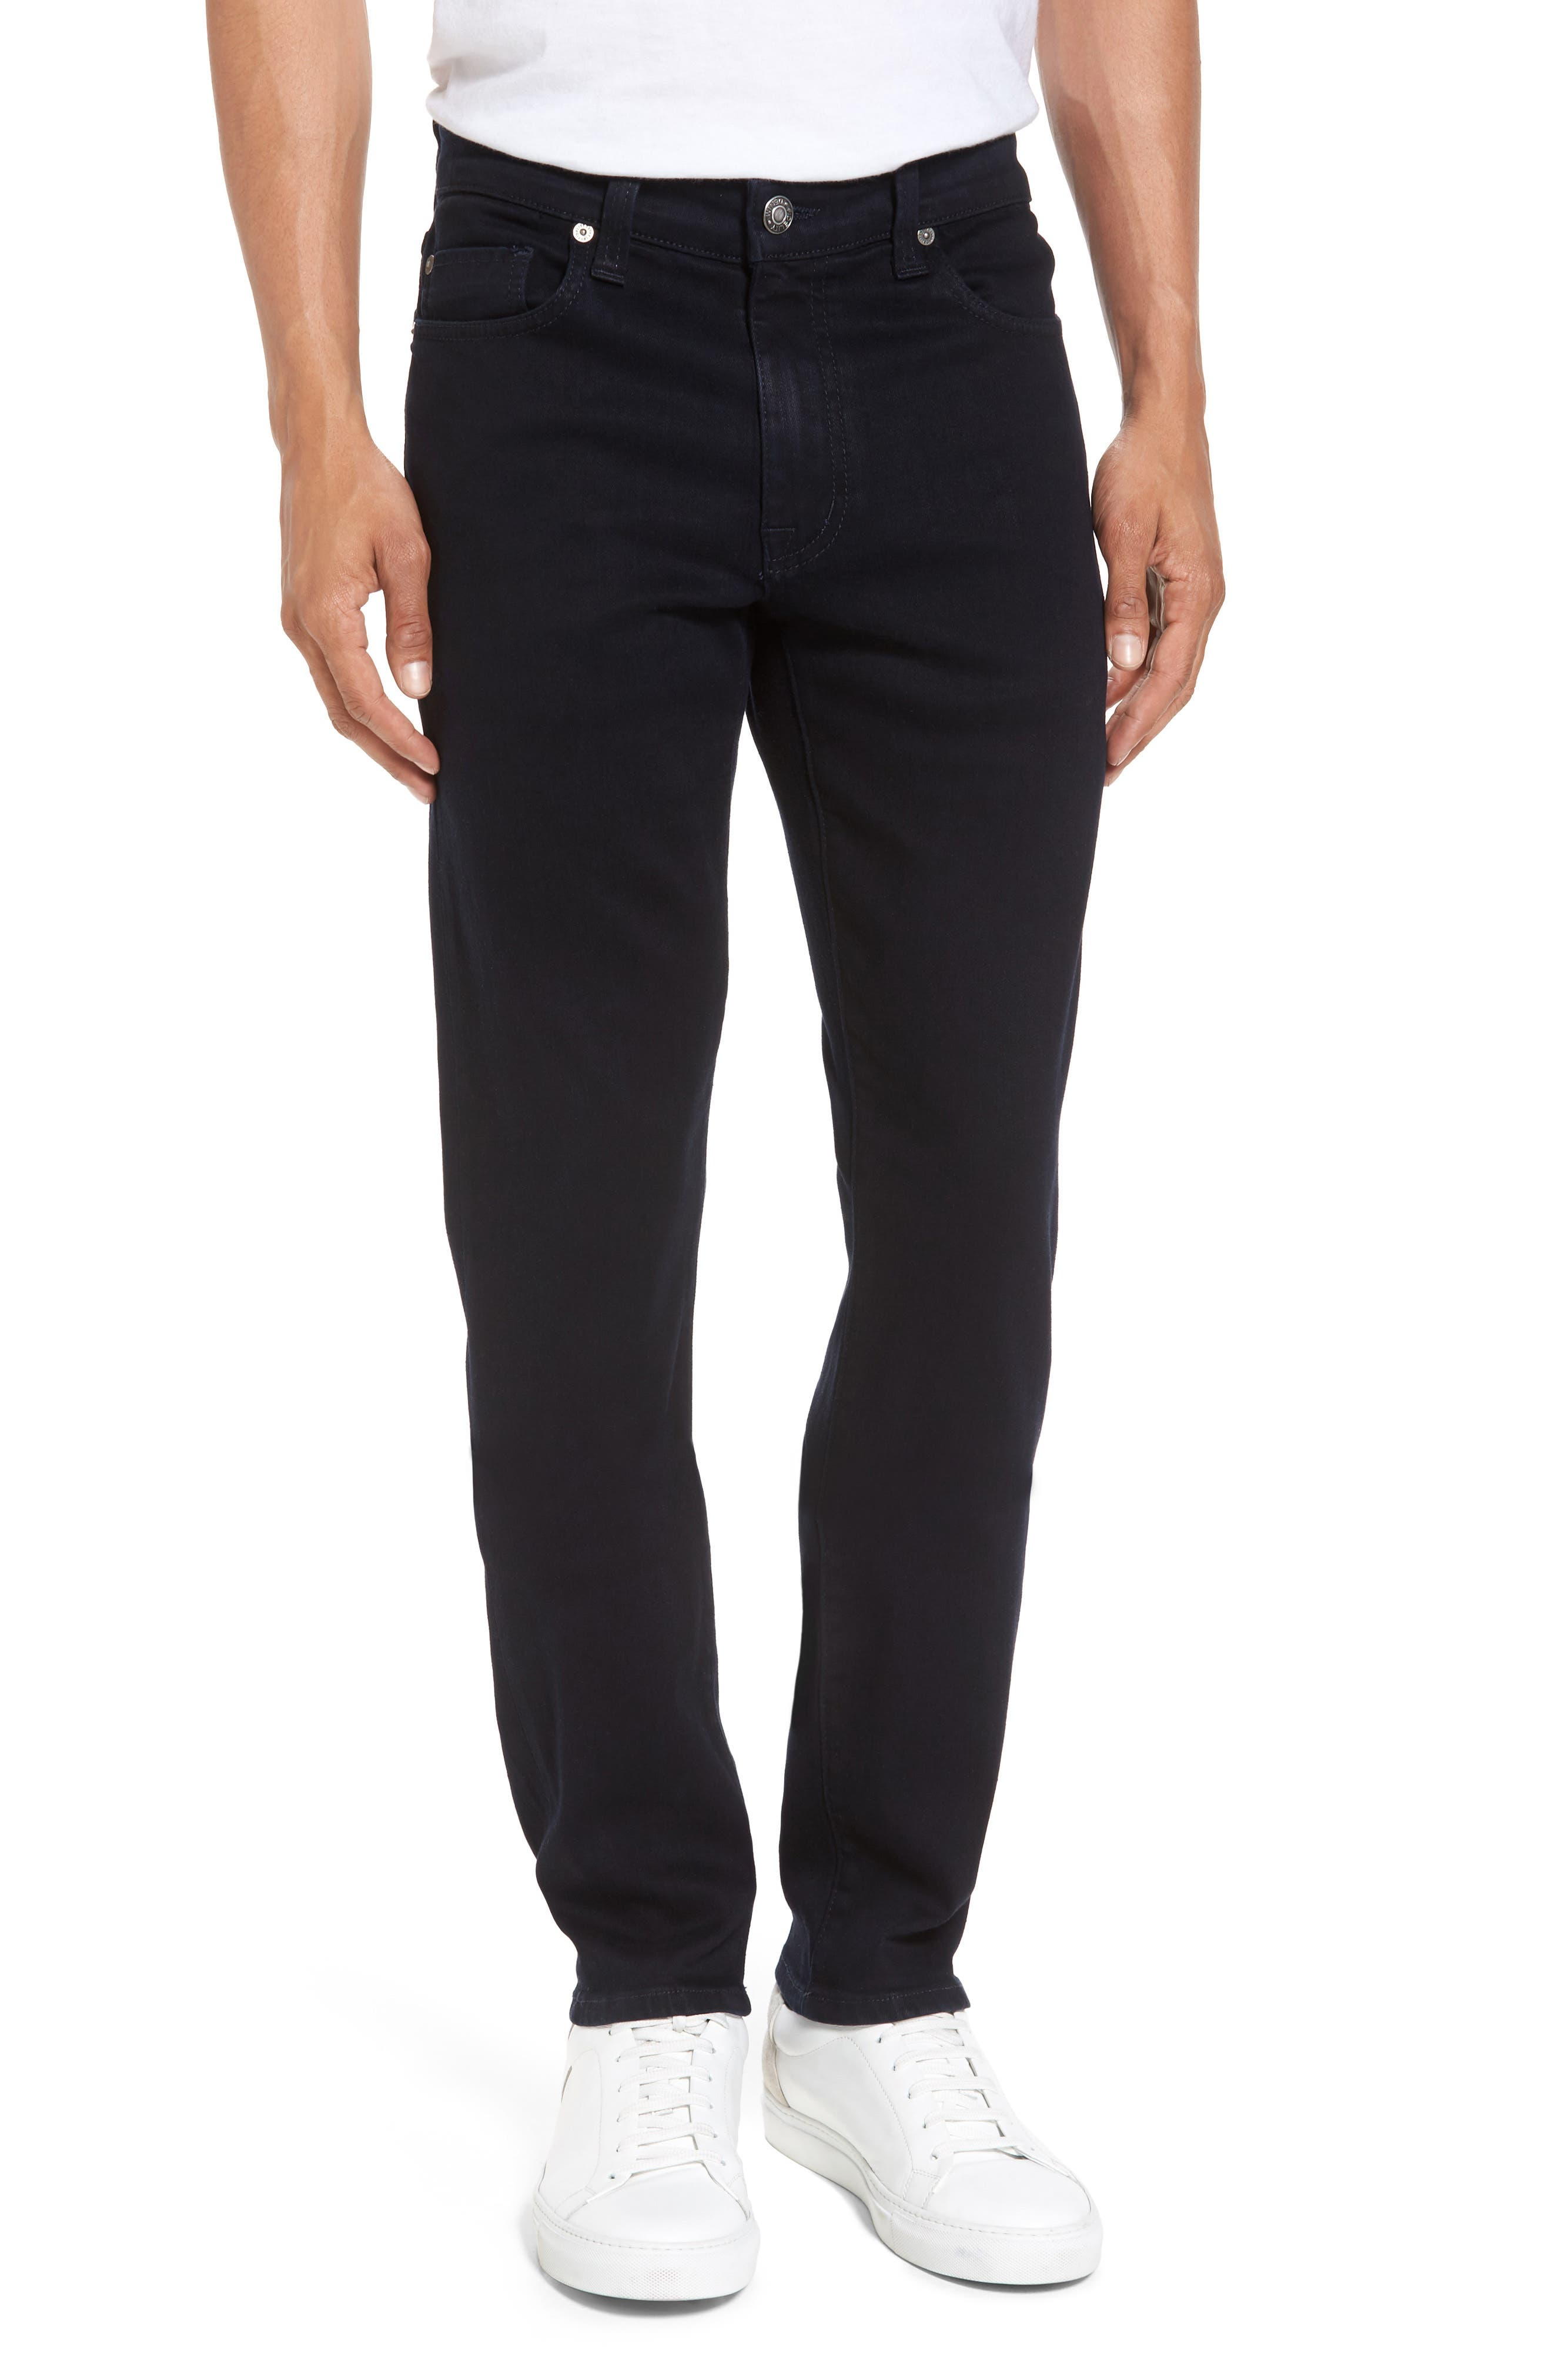 Main Image - Fidelity Denim Torino Slim Fit Jeans (Everblue)